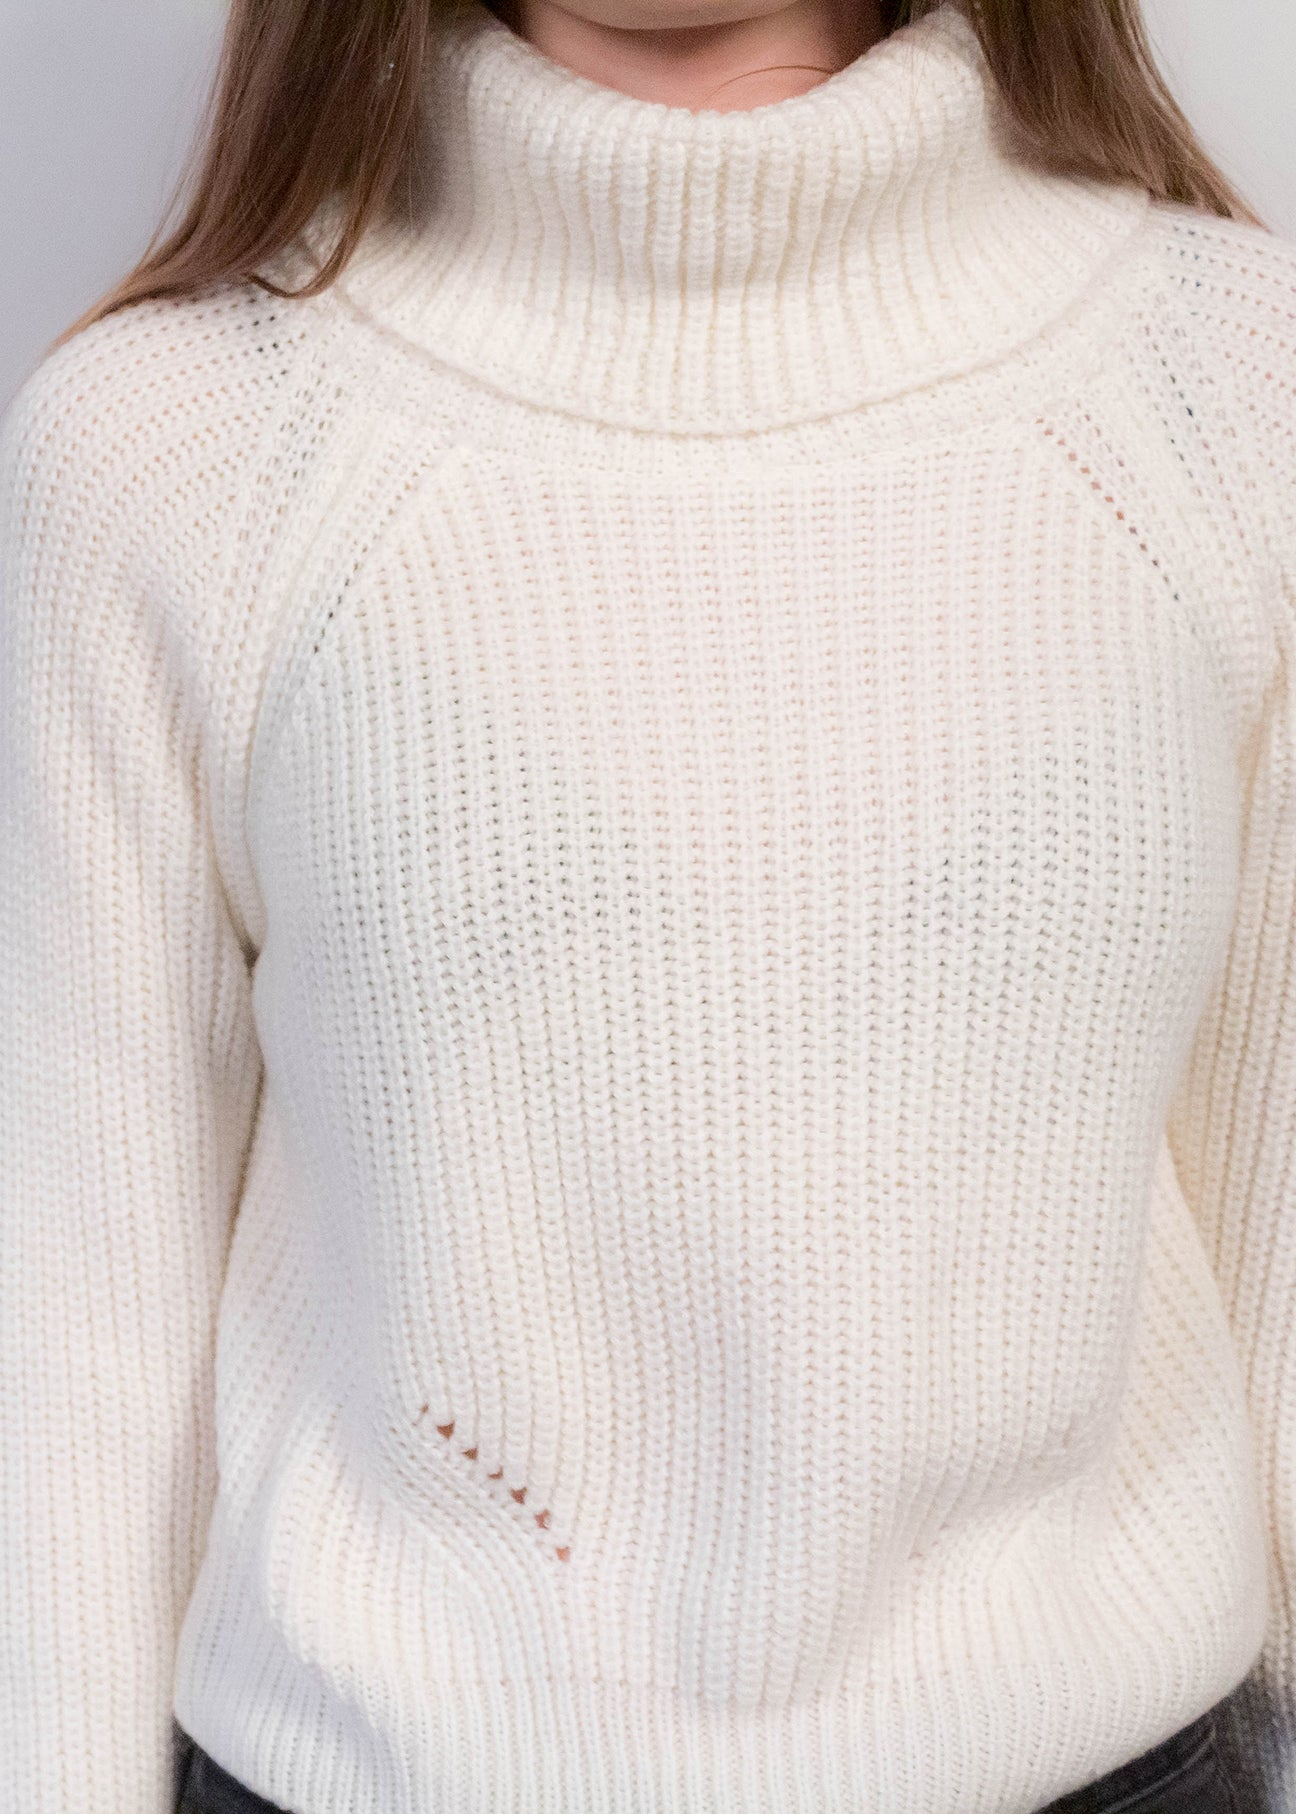 80s Pointelle Crop Sweater